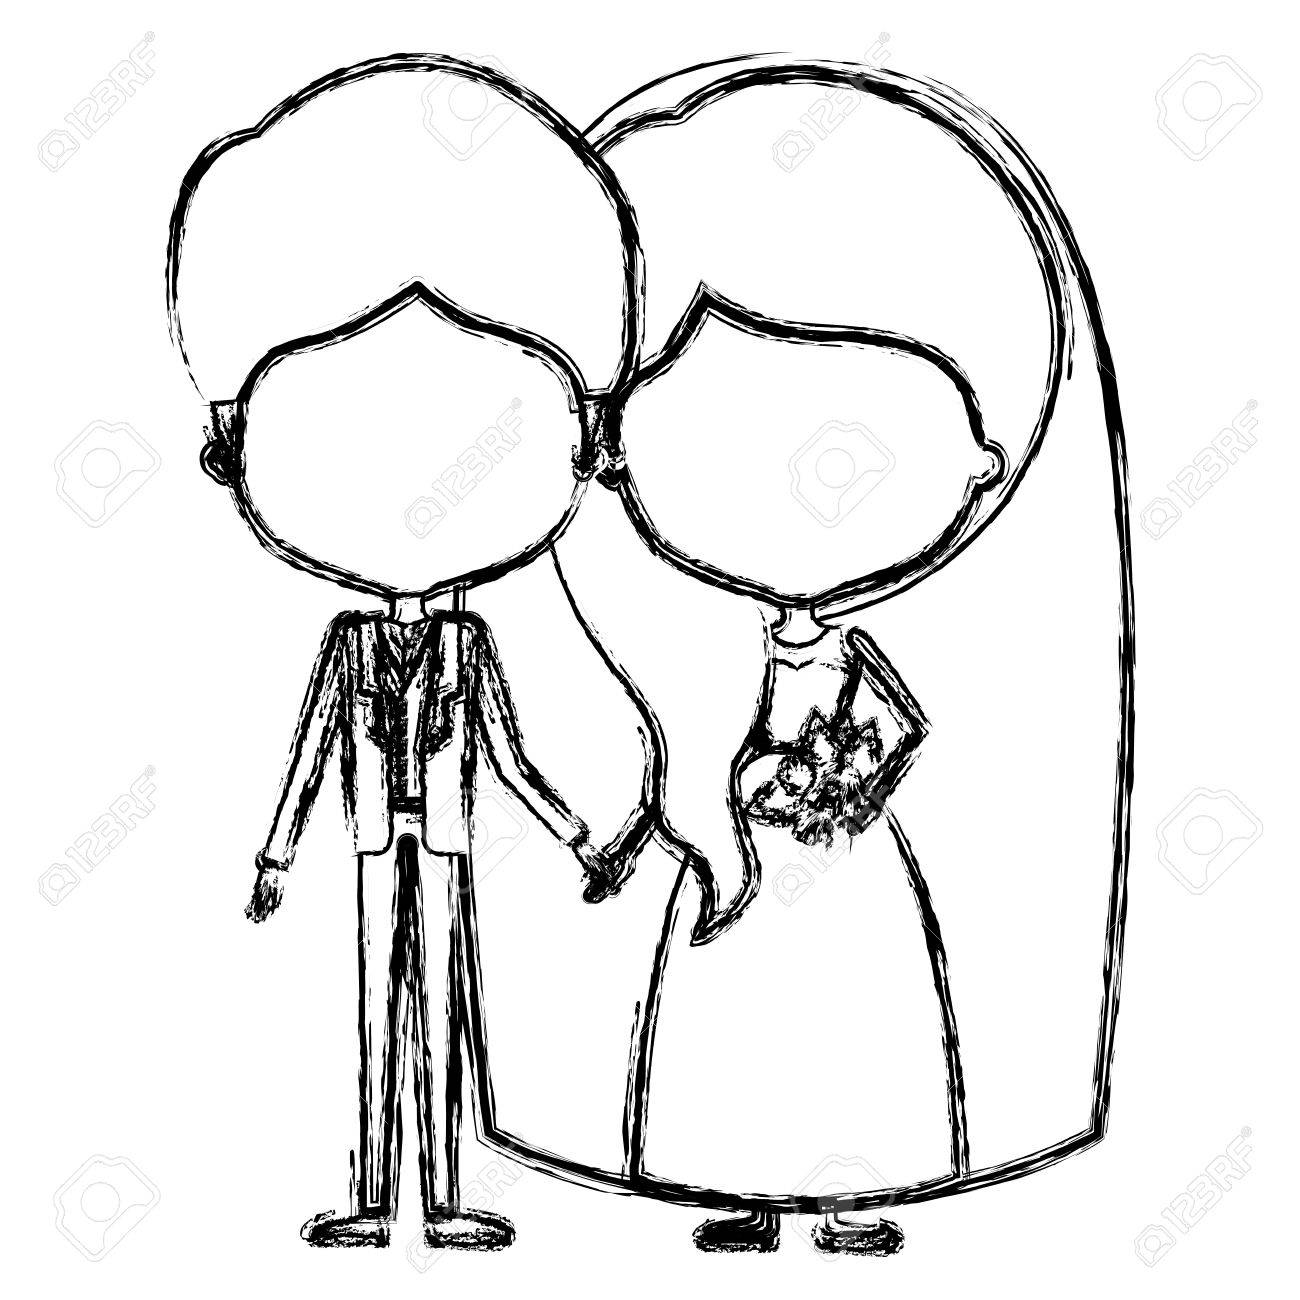 1300x1300 Monochrome Blurred Silhouette Of Caricature Faceless Newly Married